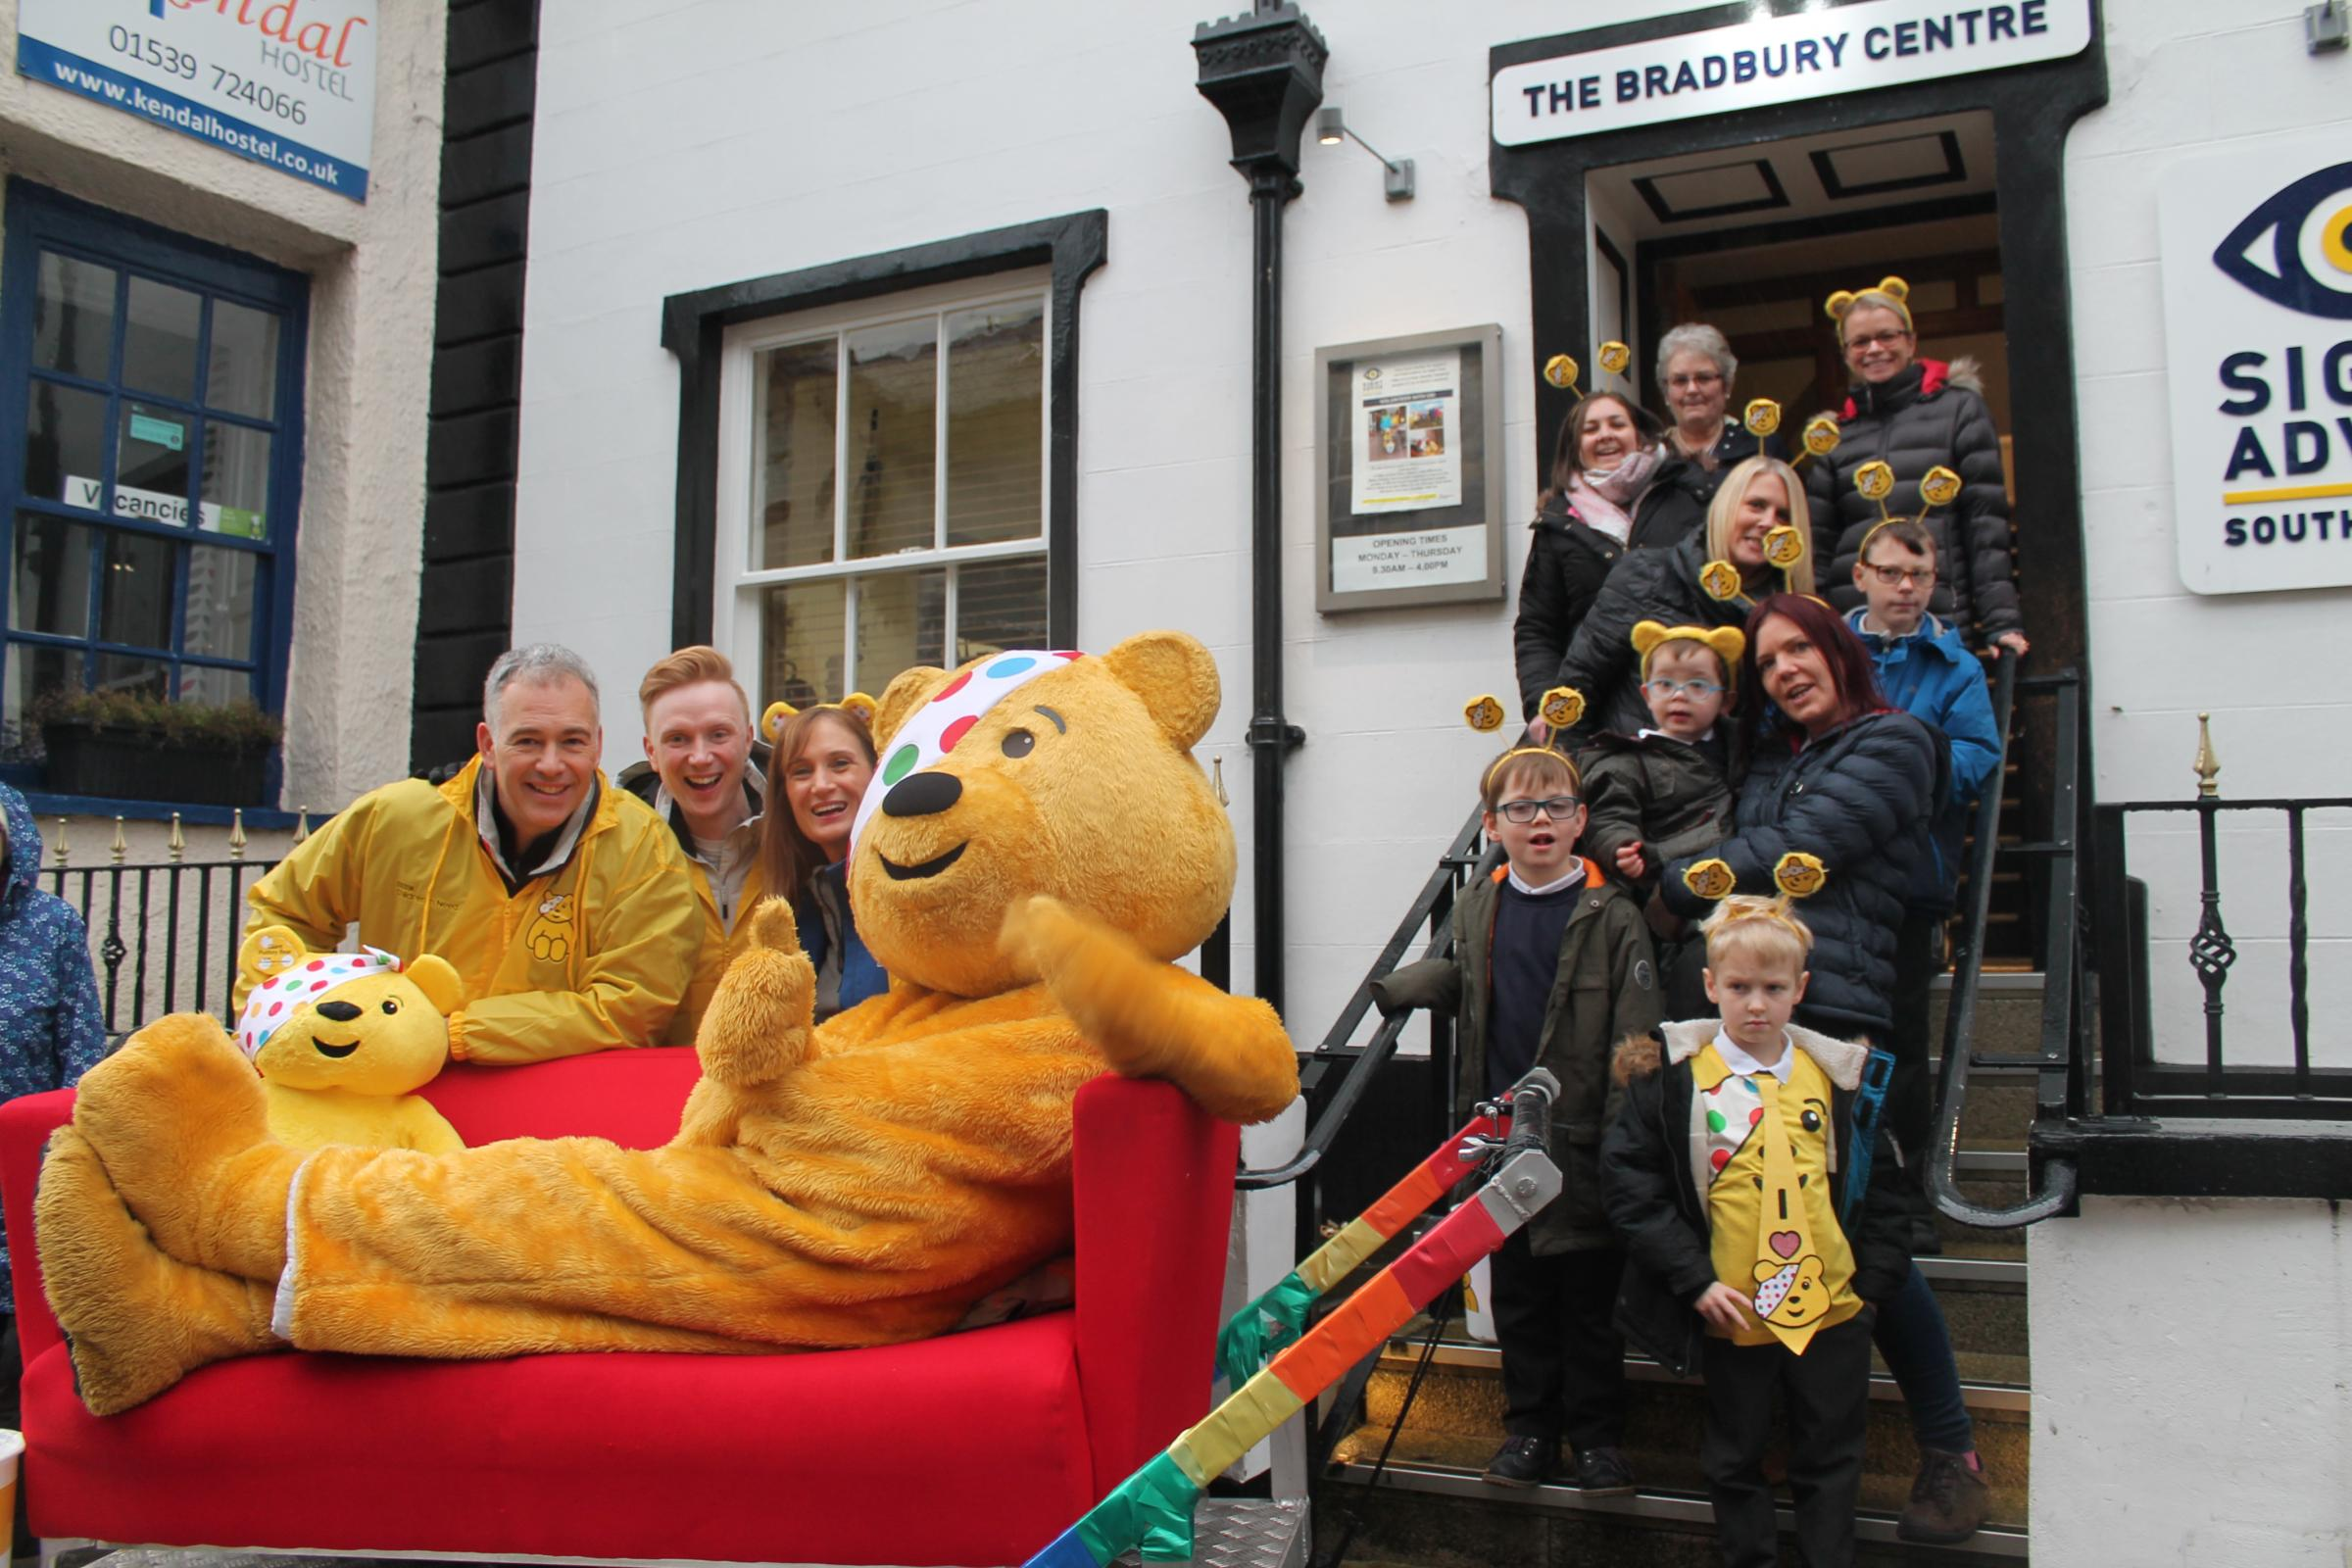 VIDEO: Pudsey and BBC North West come to Kendal for Children in Need challenge